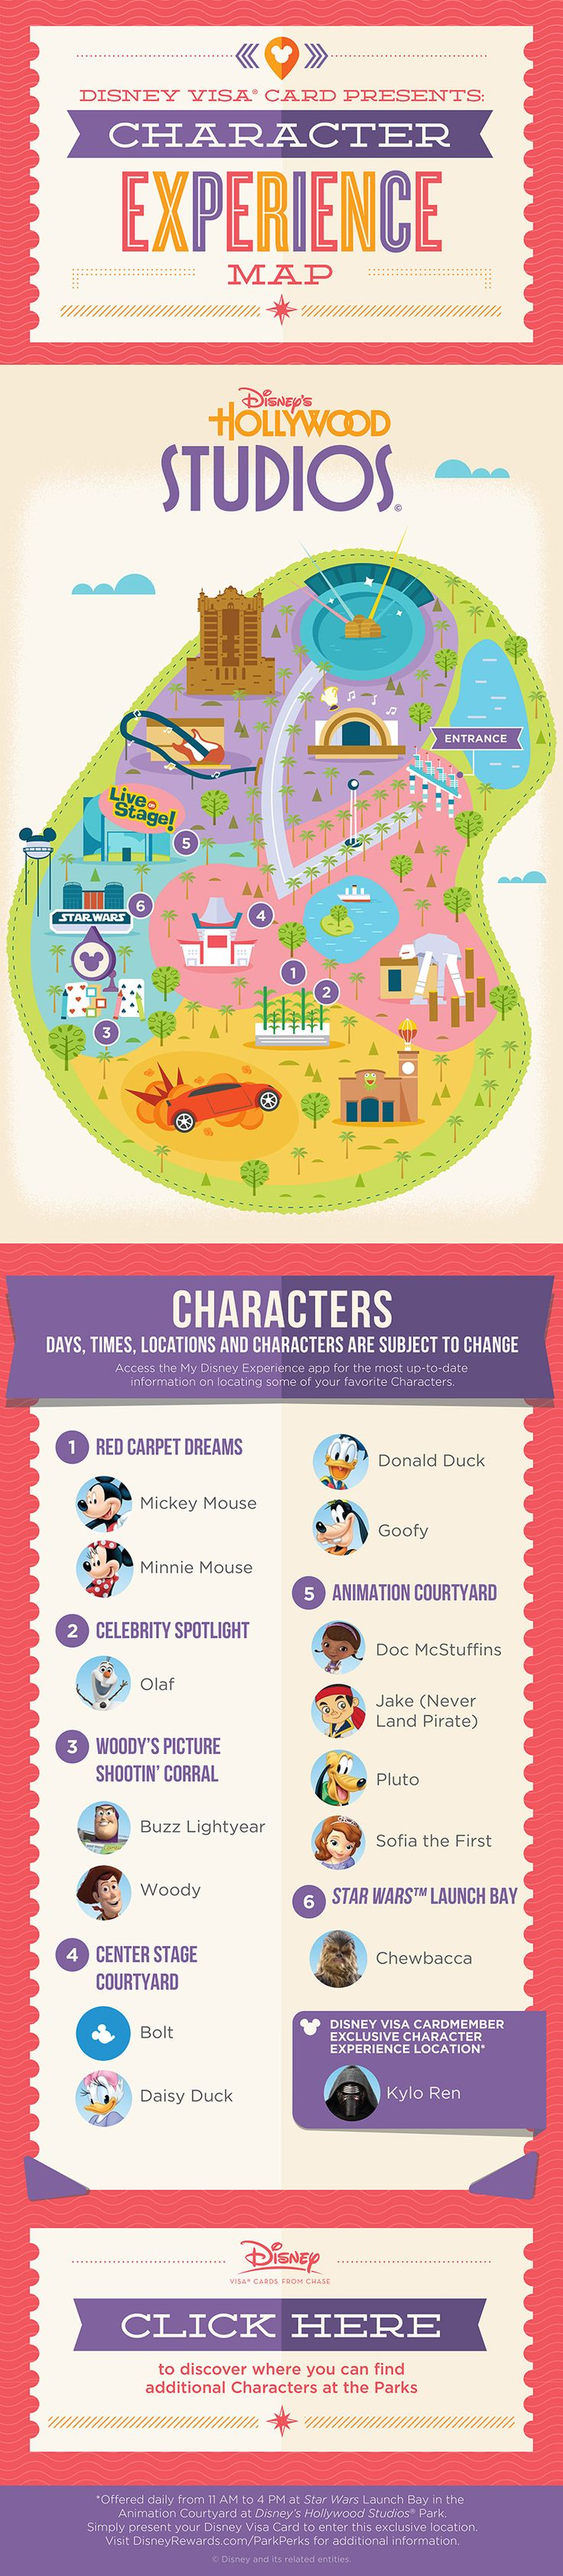 How's this for a red carpet treatment? This guide to Characters throughout Disney's Hollywood Studios® shows where to find them and who to expect, so get that autograph book ready. Don't forget to check the My Disney Experience app for possible time changes!